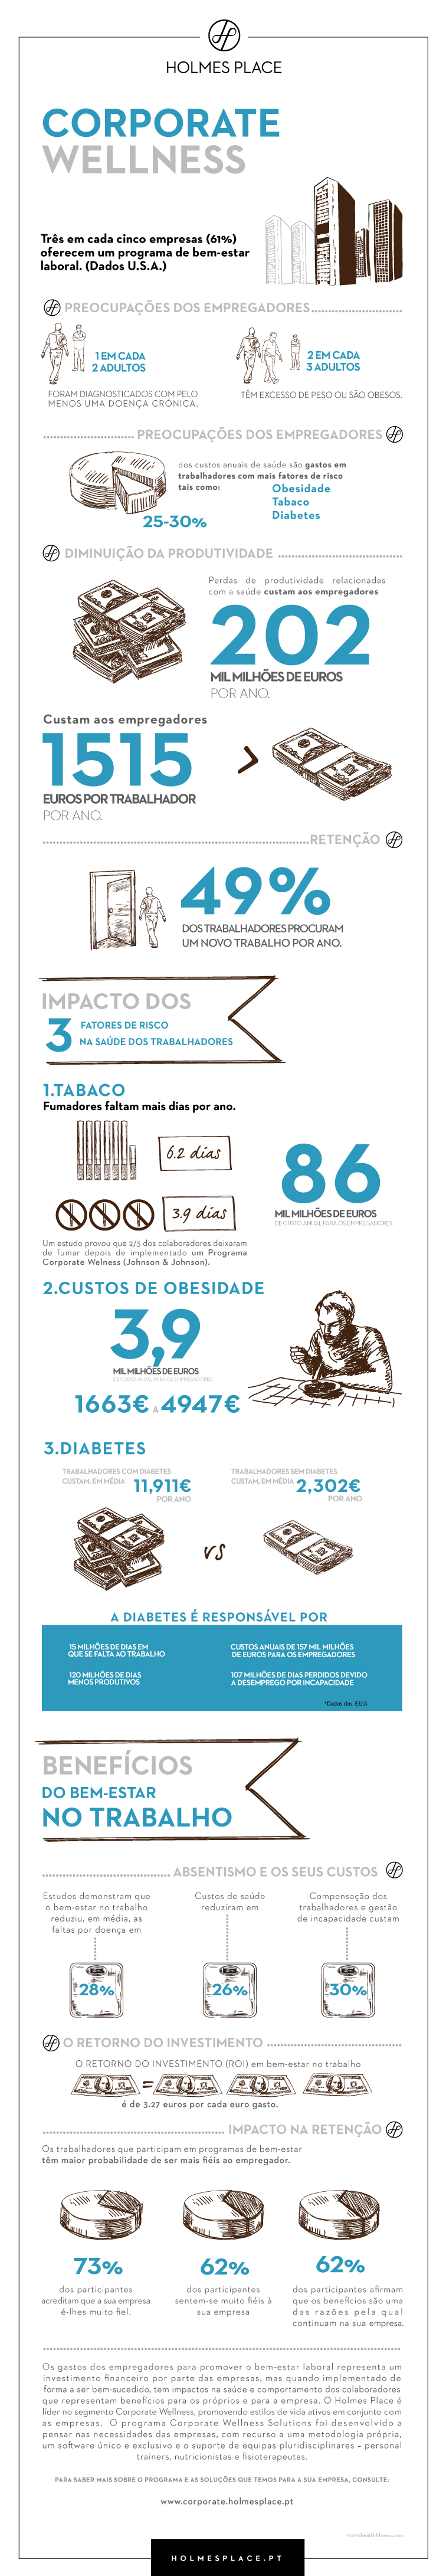 Inforgrafico_corporate_ wellness.jpg